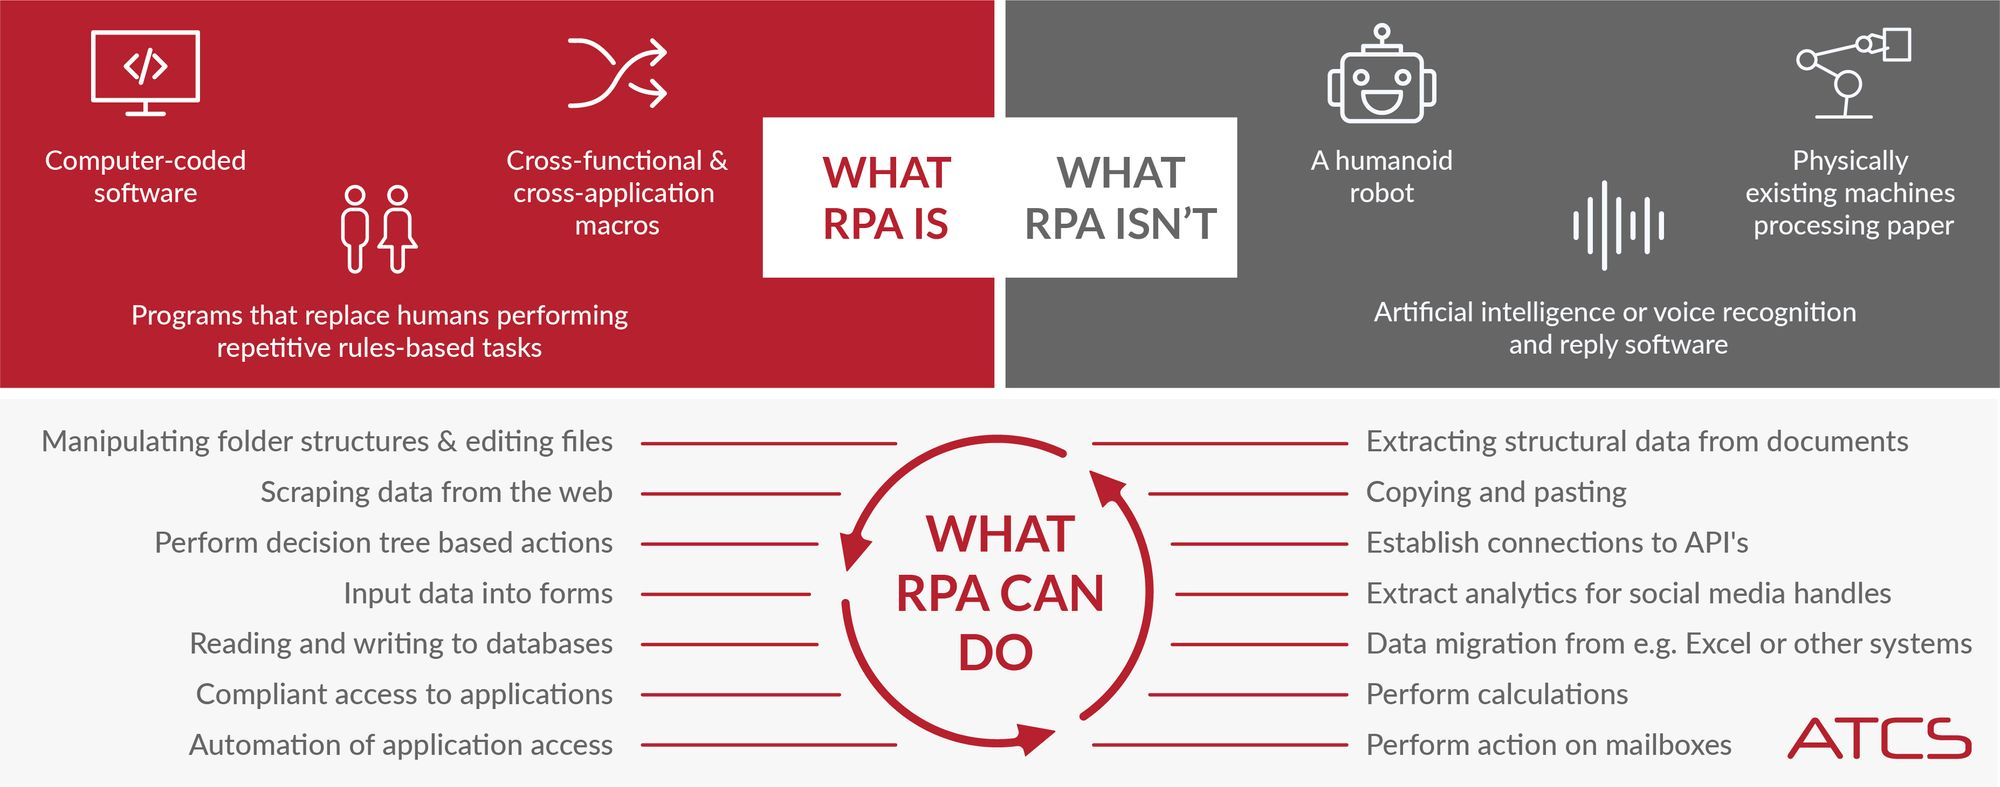 What is RPA and what can it do?